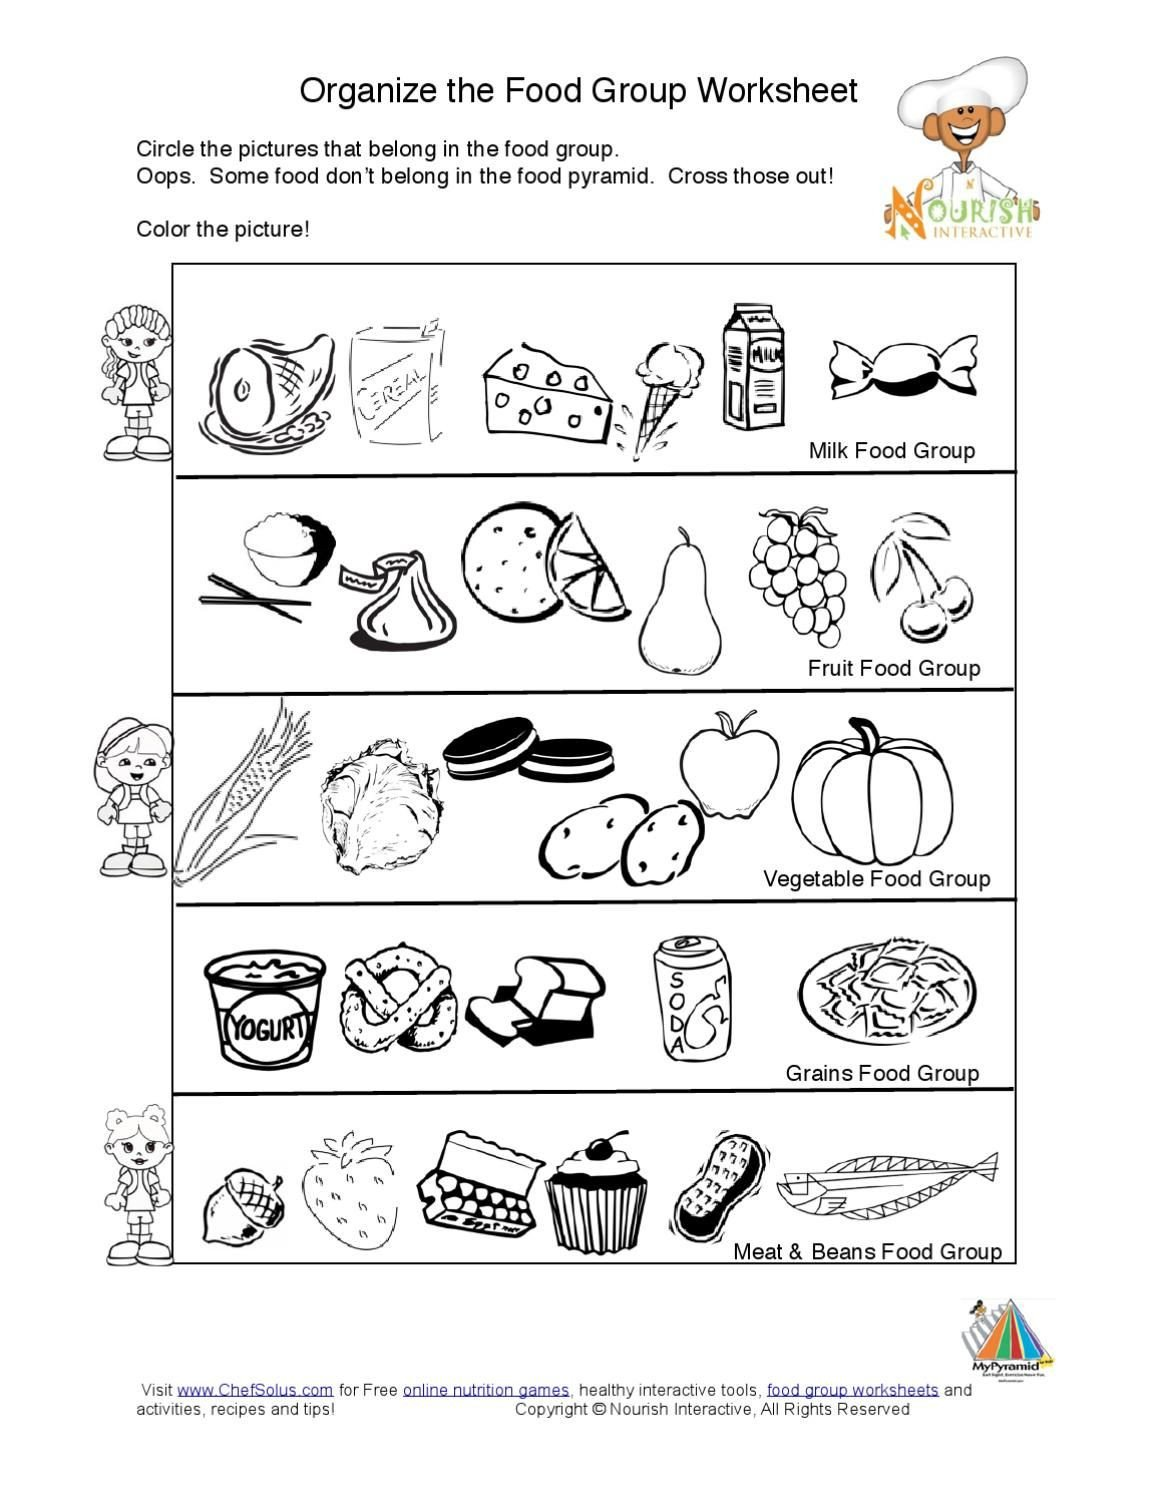 Food Group Worksheets Kids Food Pyramid Food Groups Learning Nutrition Worksheet K